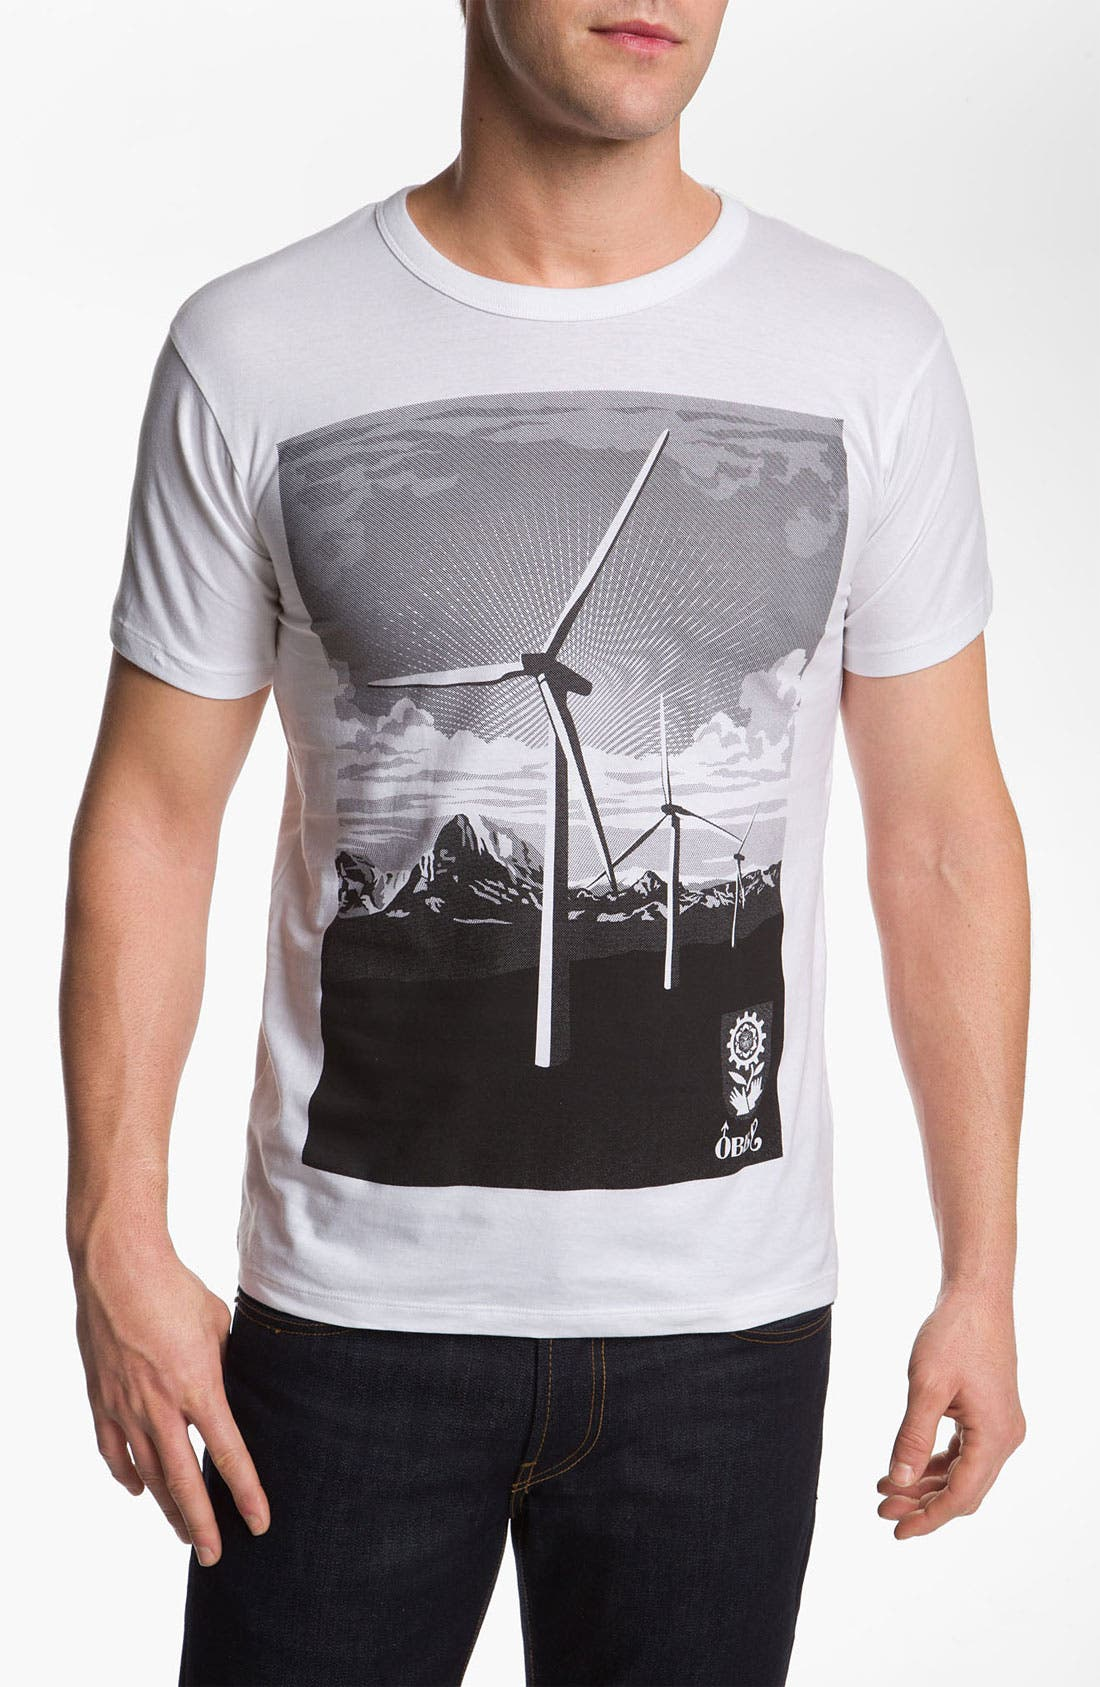 Main Image - Obey 'Windmill' Graphic T-Shirt